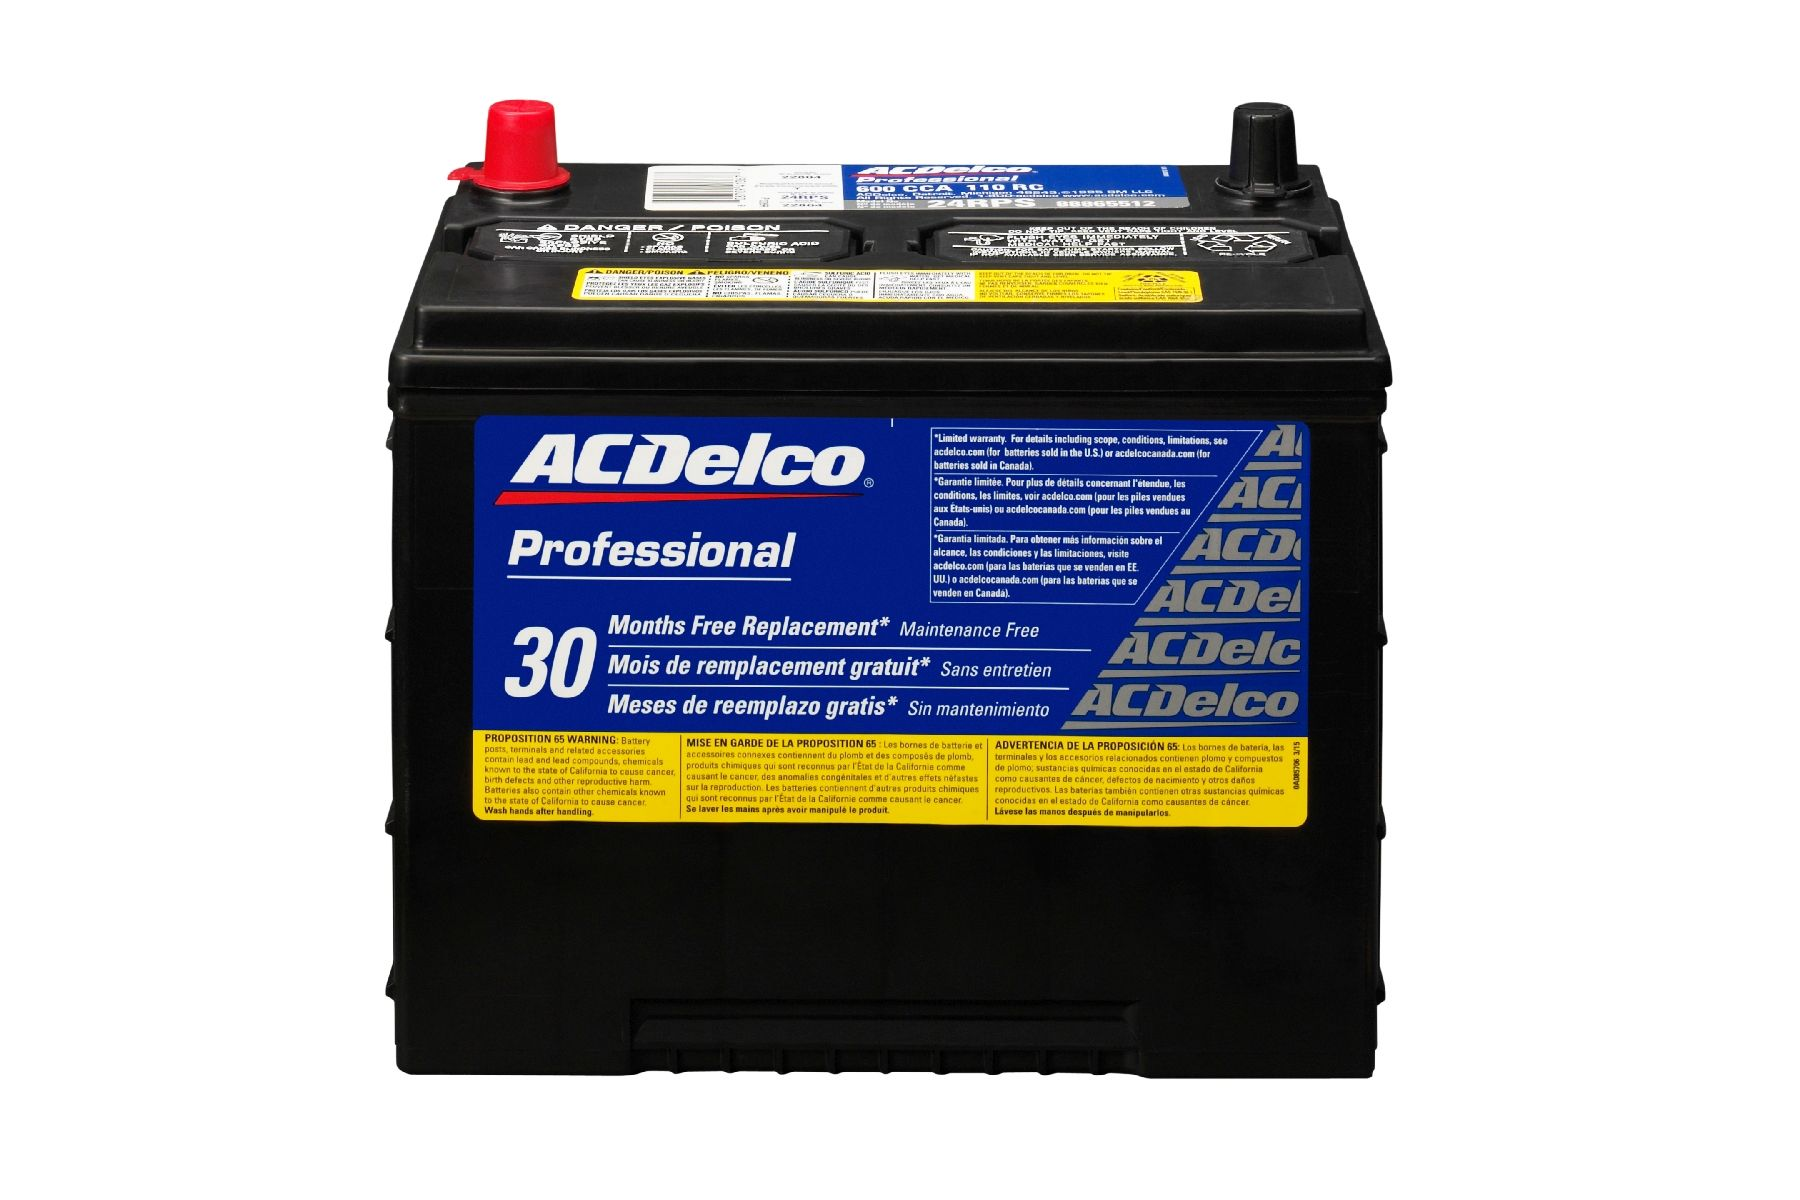 Battery Silver Left Acdelco Pro 24rps Car Truck Parts Charging Starting Systems Batteries